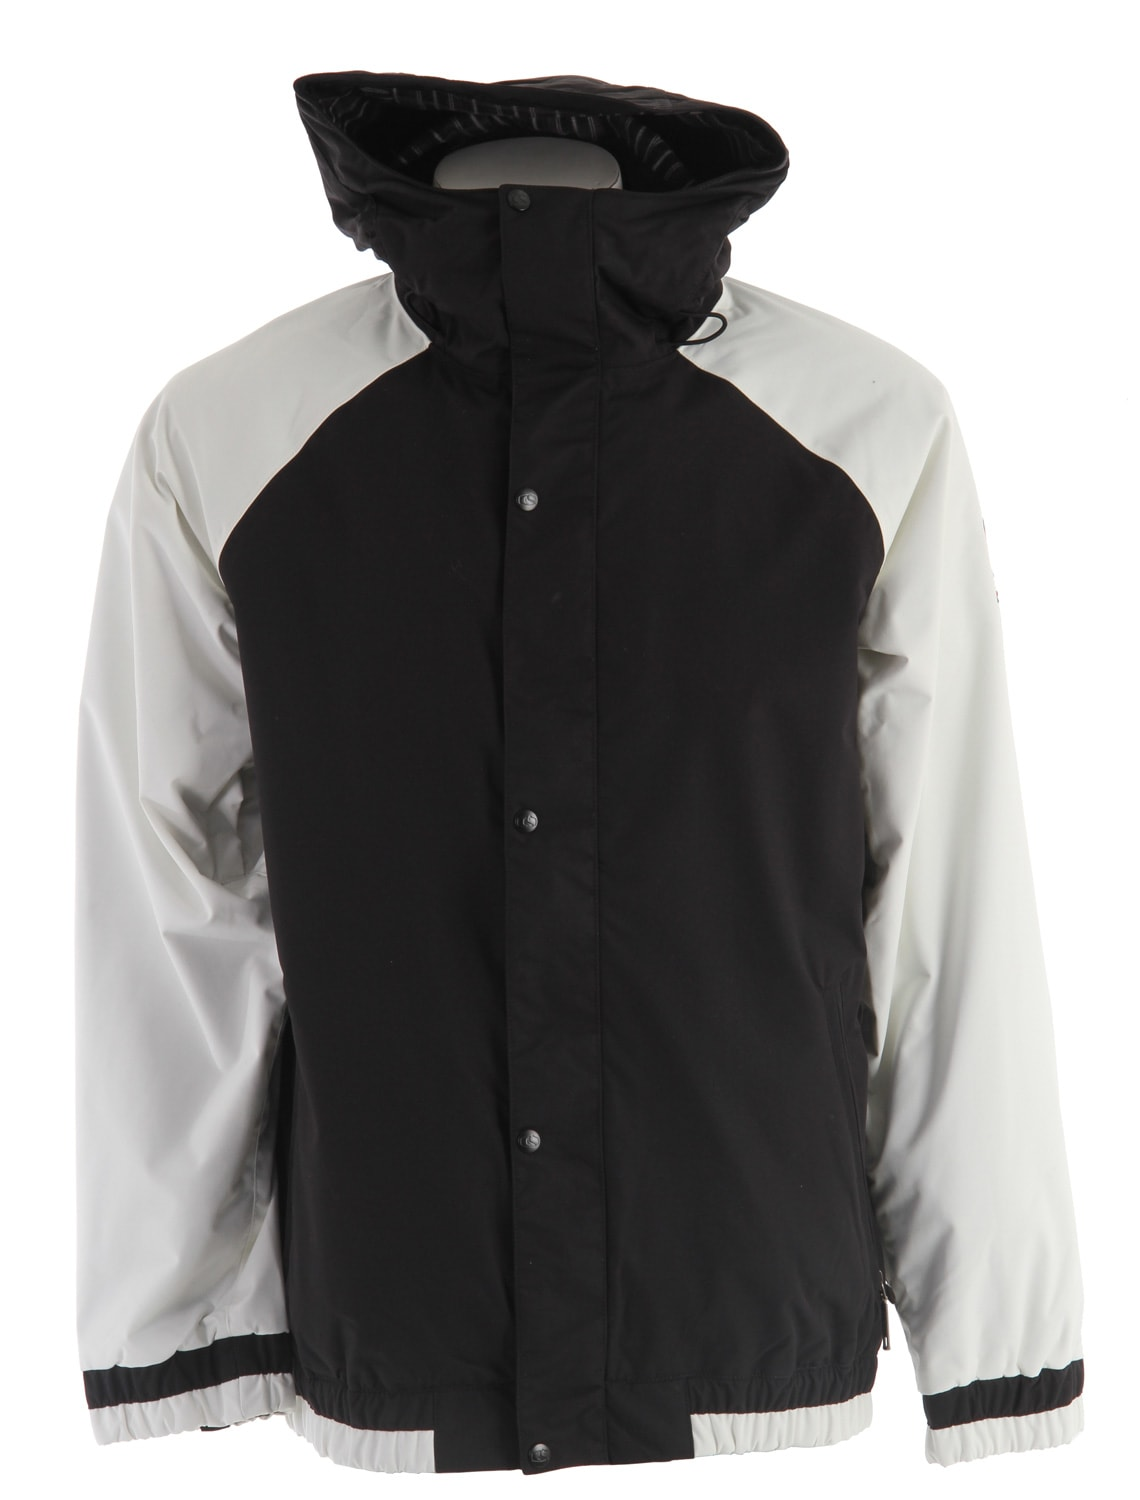 Shop for Bonfire Timberline Snowboard Jacket Black/Silk - Men's